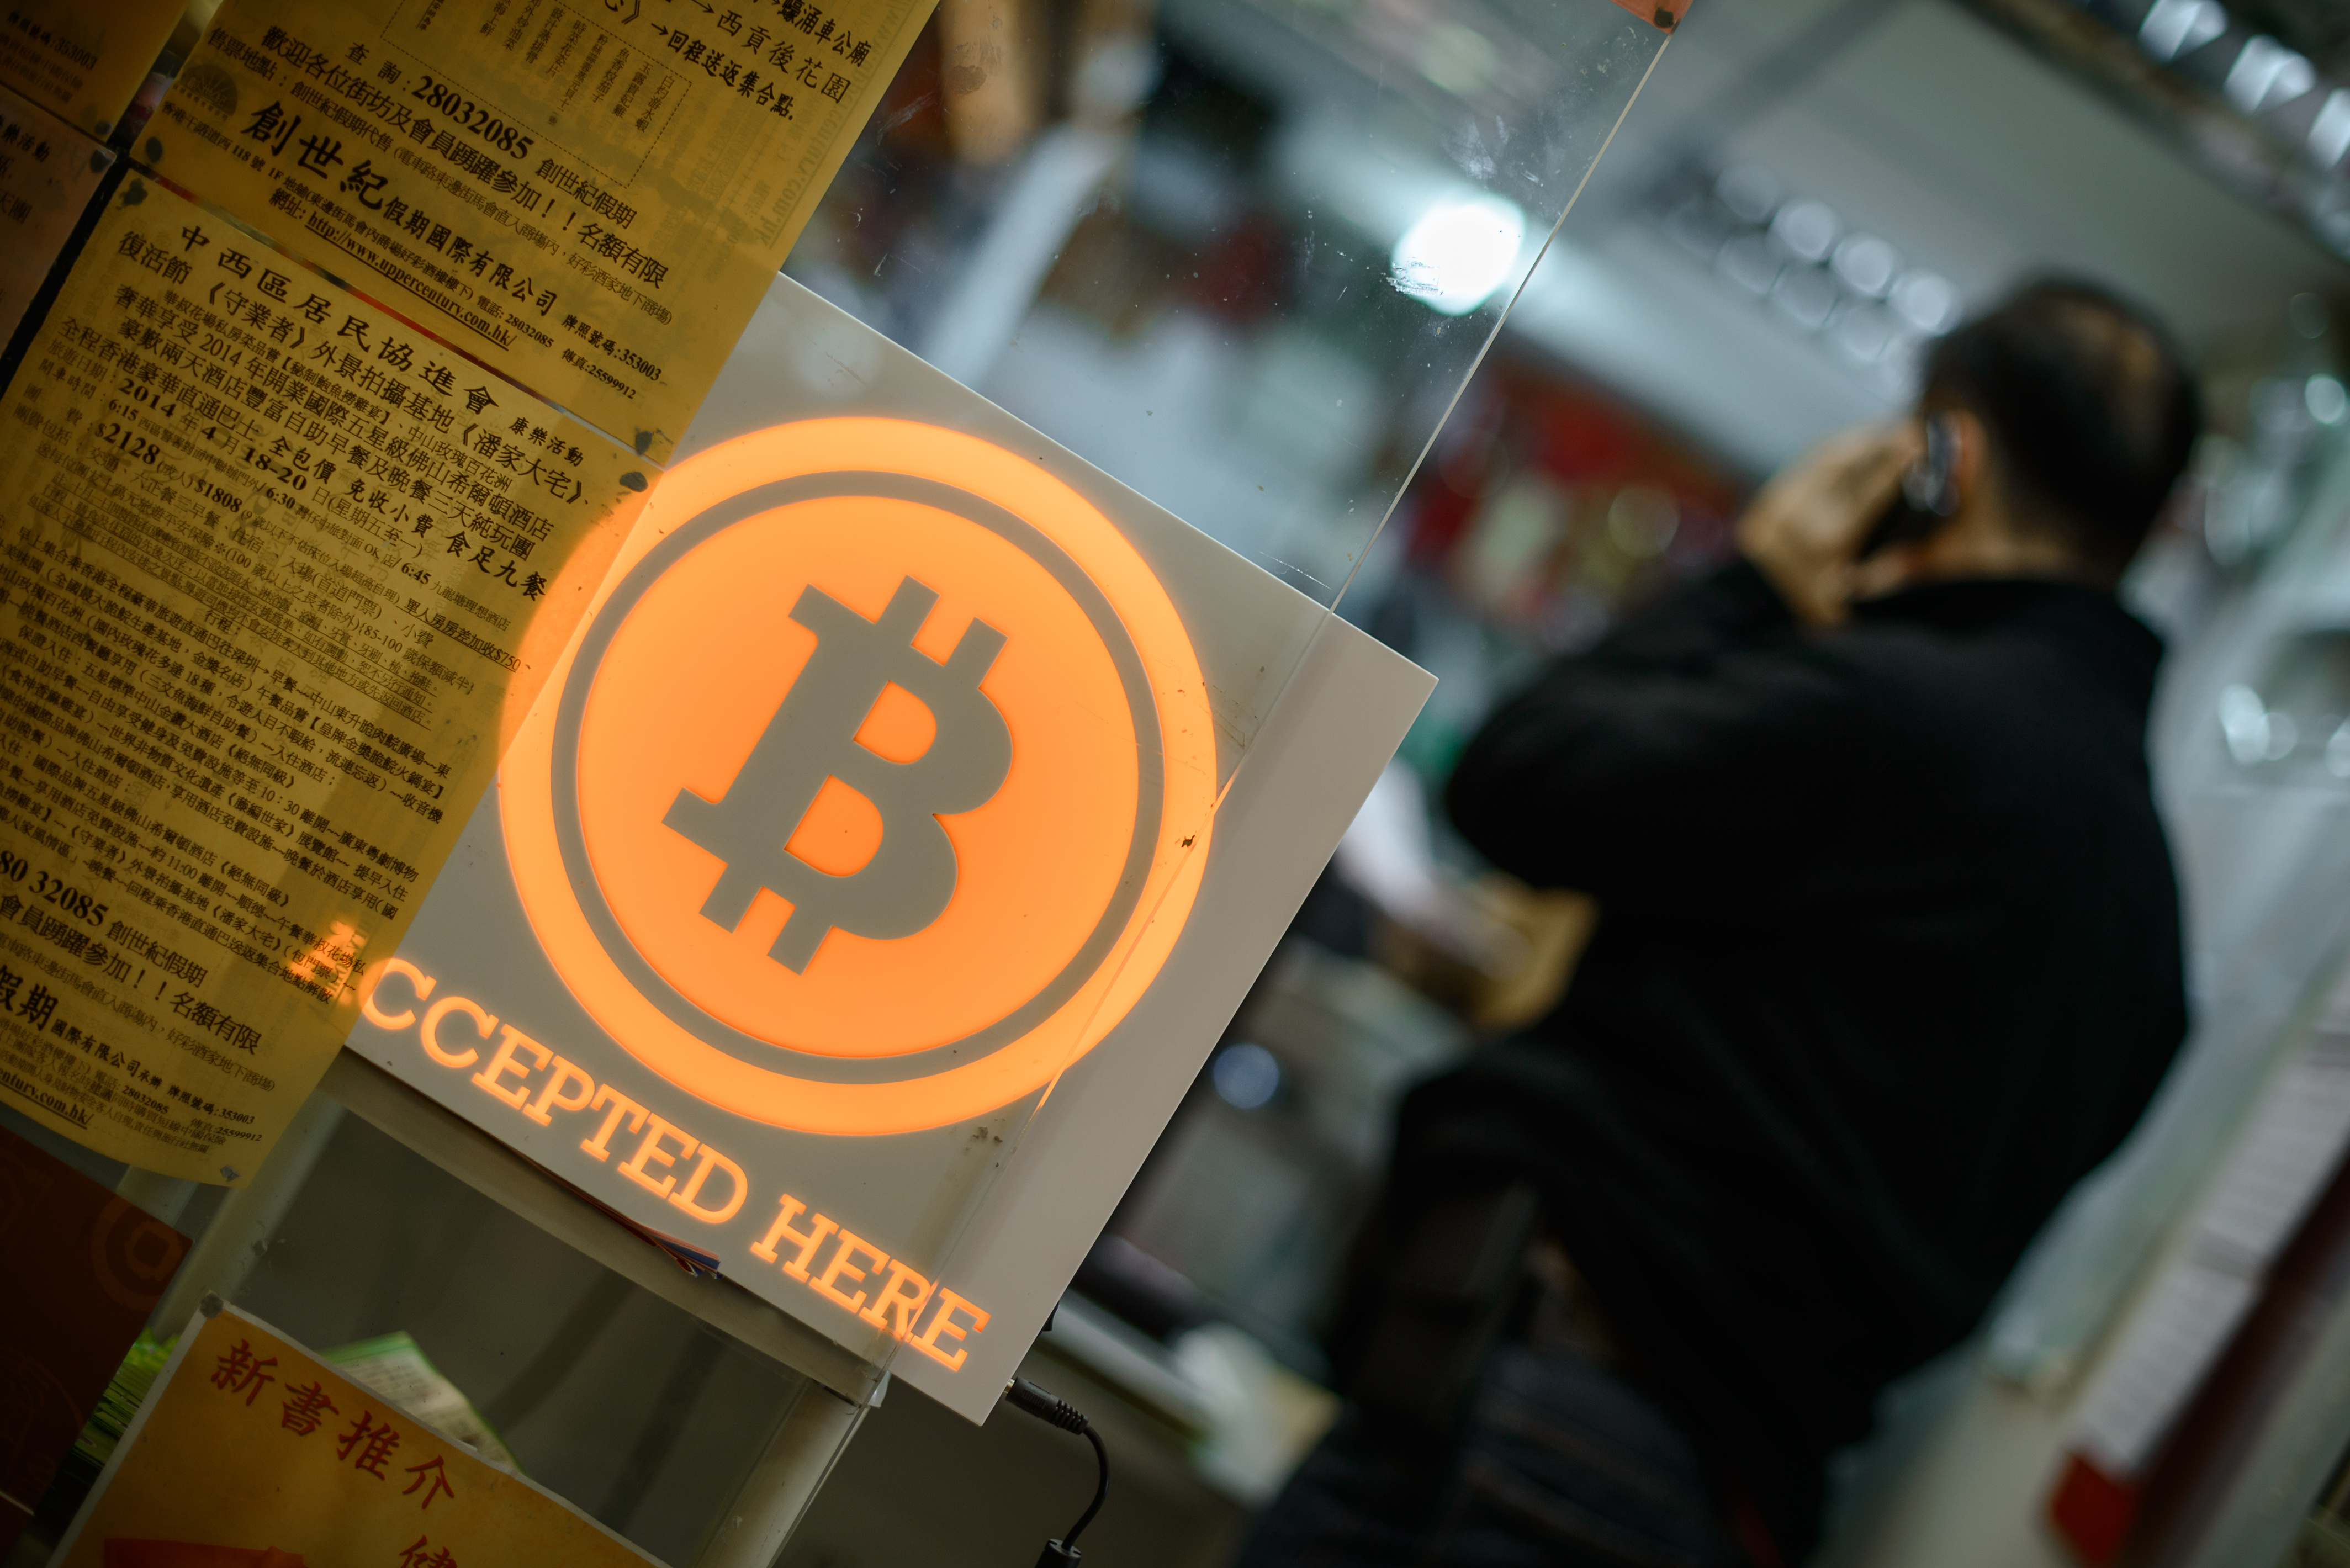 Bitcoin is growing in popularity as a way of quickly and safely moving money. But that also makes the job of a thief much more lucrative and efficient. (Photo: Getty)